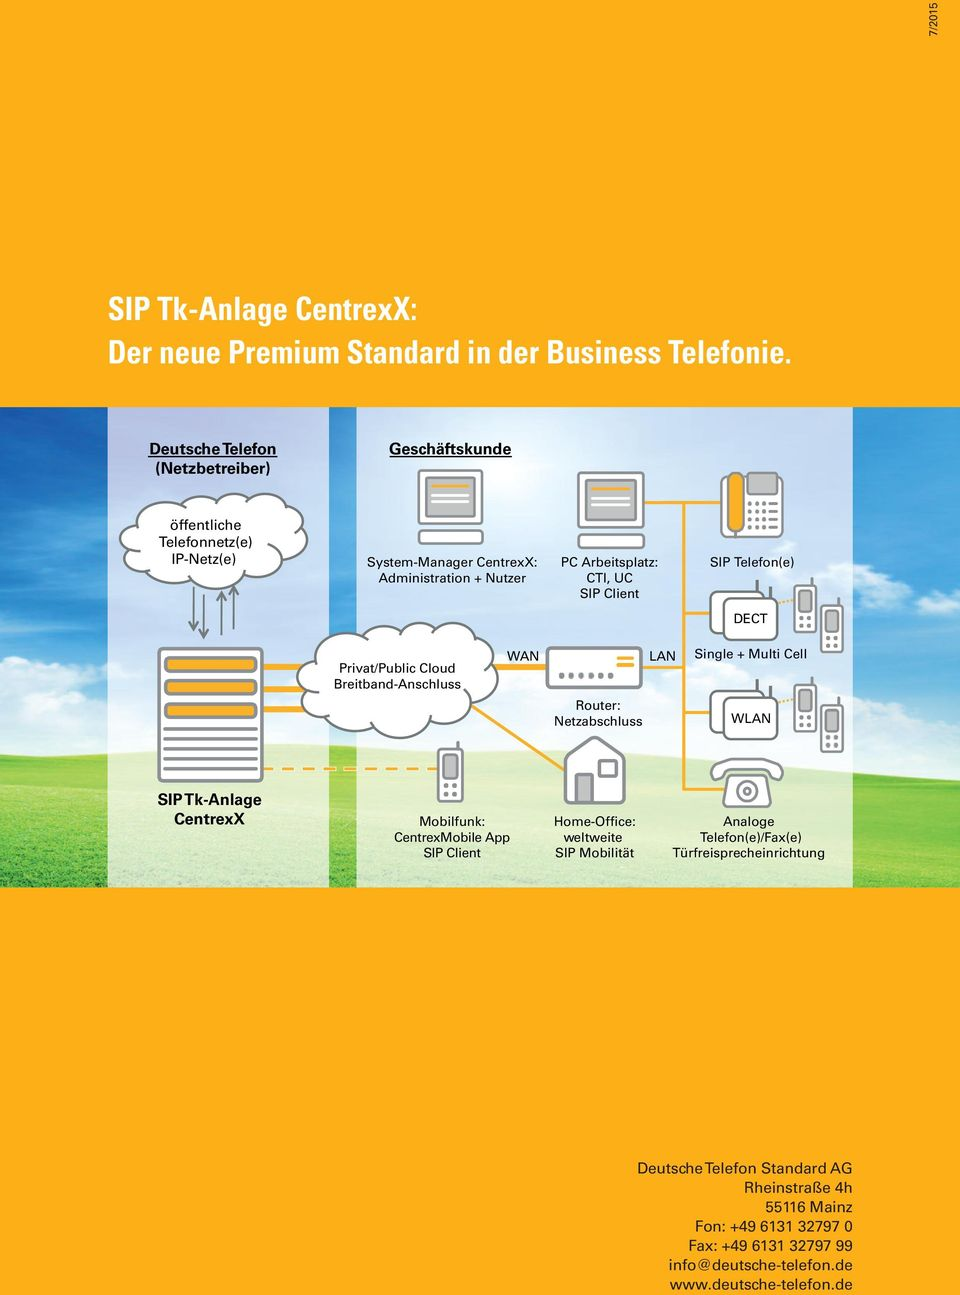 Client SIP Telefon(e) DECT Privat/Public Cloud Breitband-Anschluss WAN LAN Single + Multi Cell Router: Netzabschluss WLAN SIP Tk-Anlage CentrexX Mobilfunk: